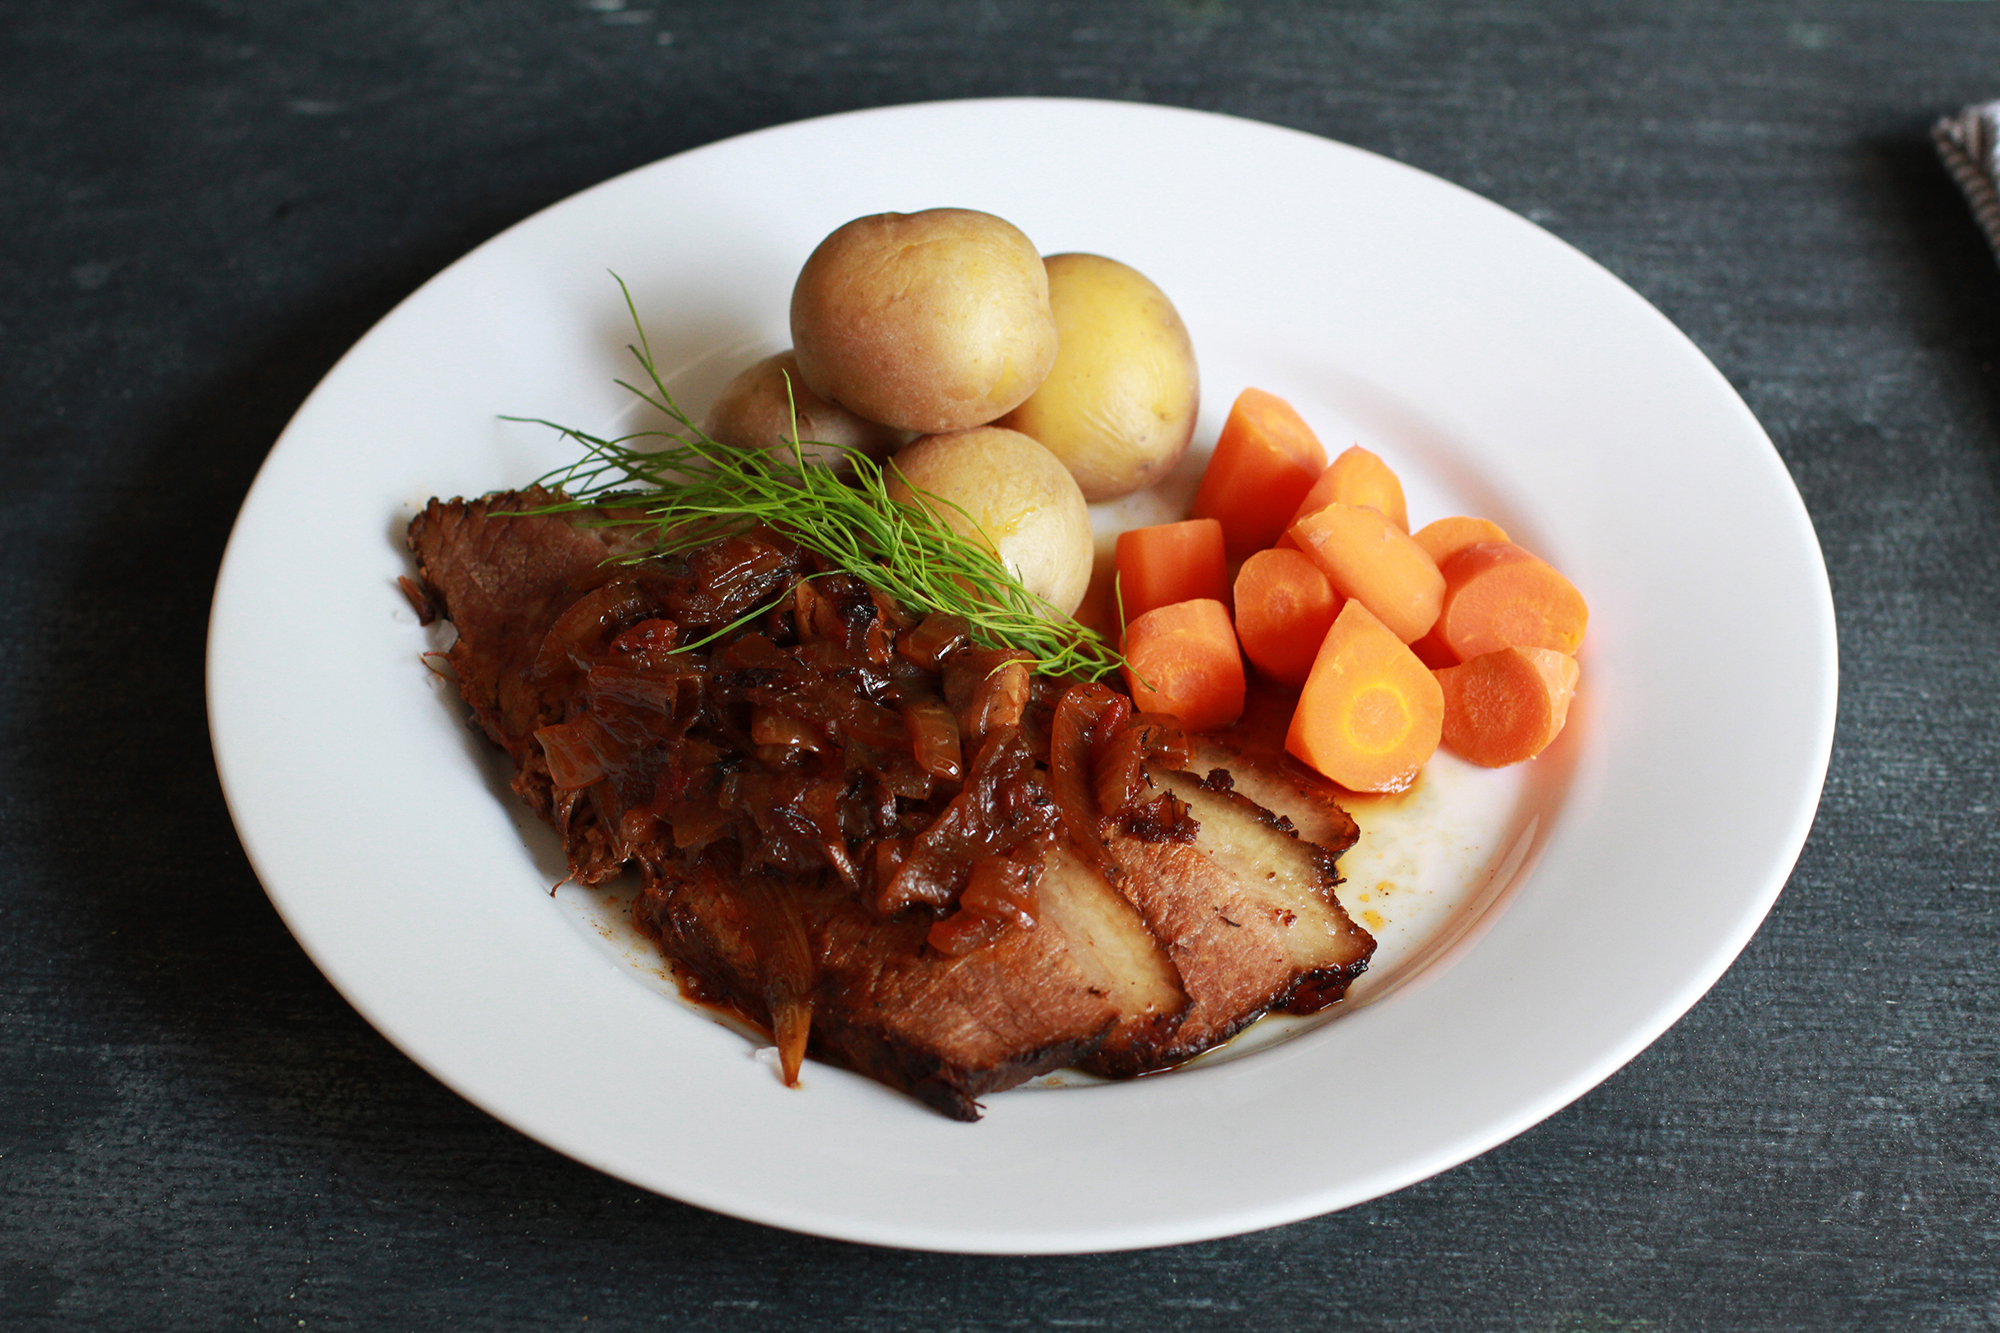 Braised Brisket with Fennel & Onions By Andrew Zimmern